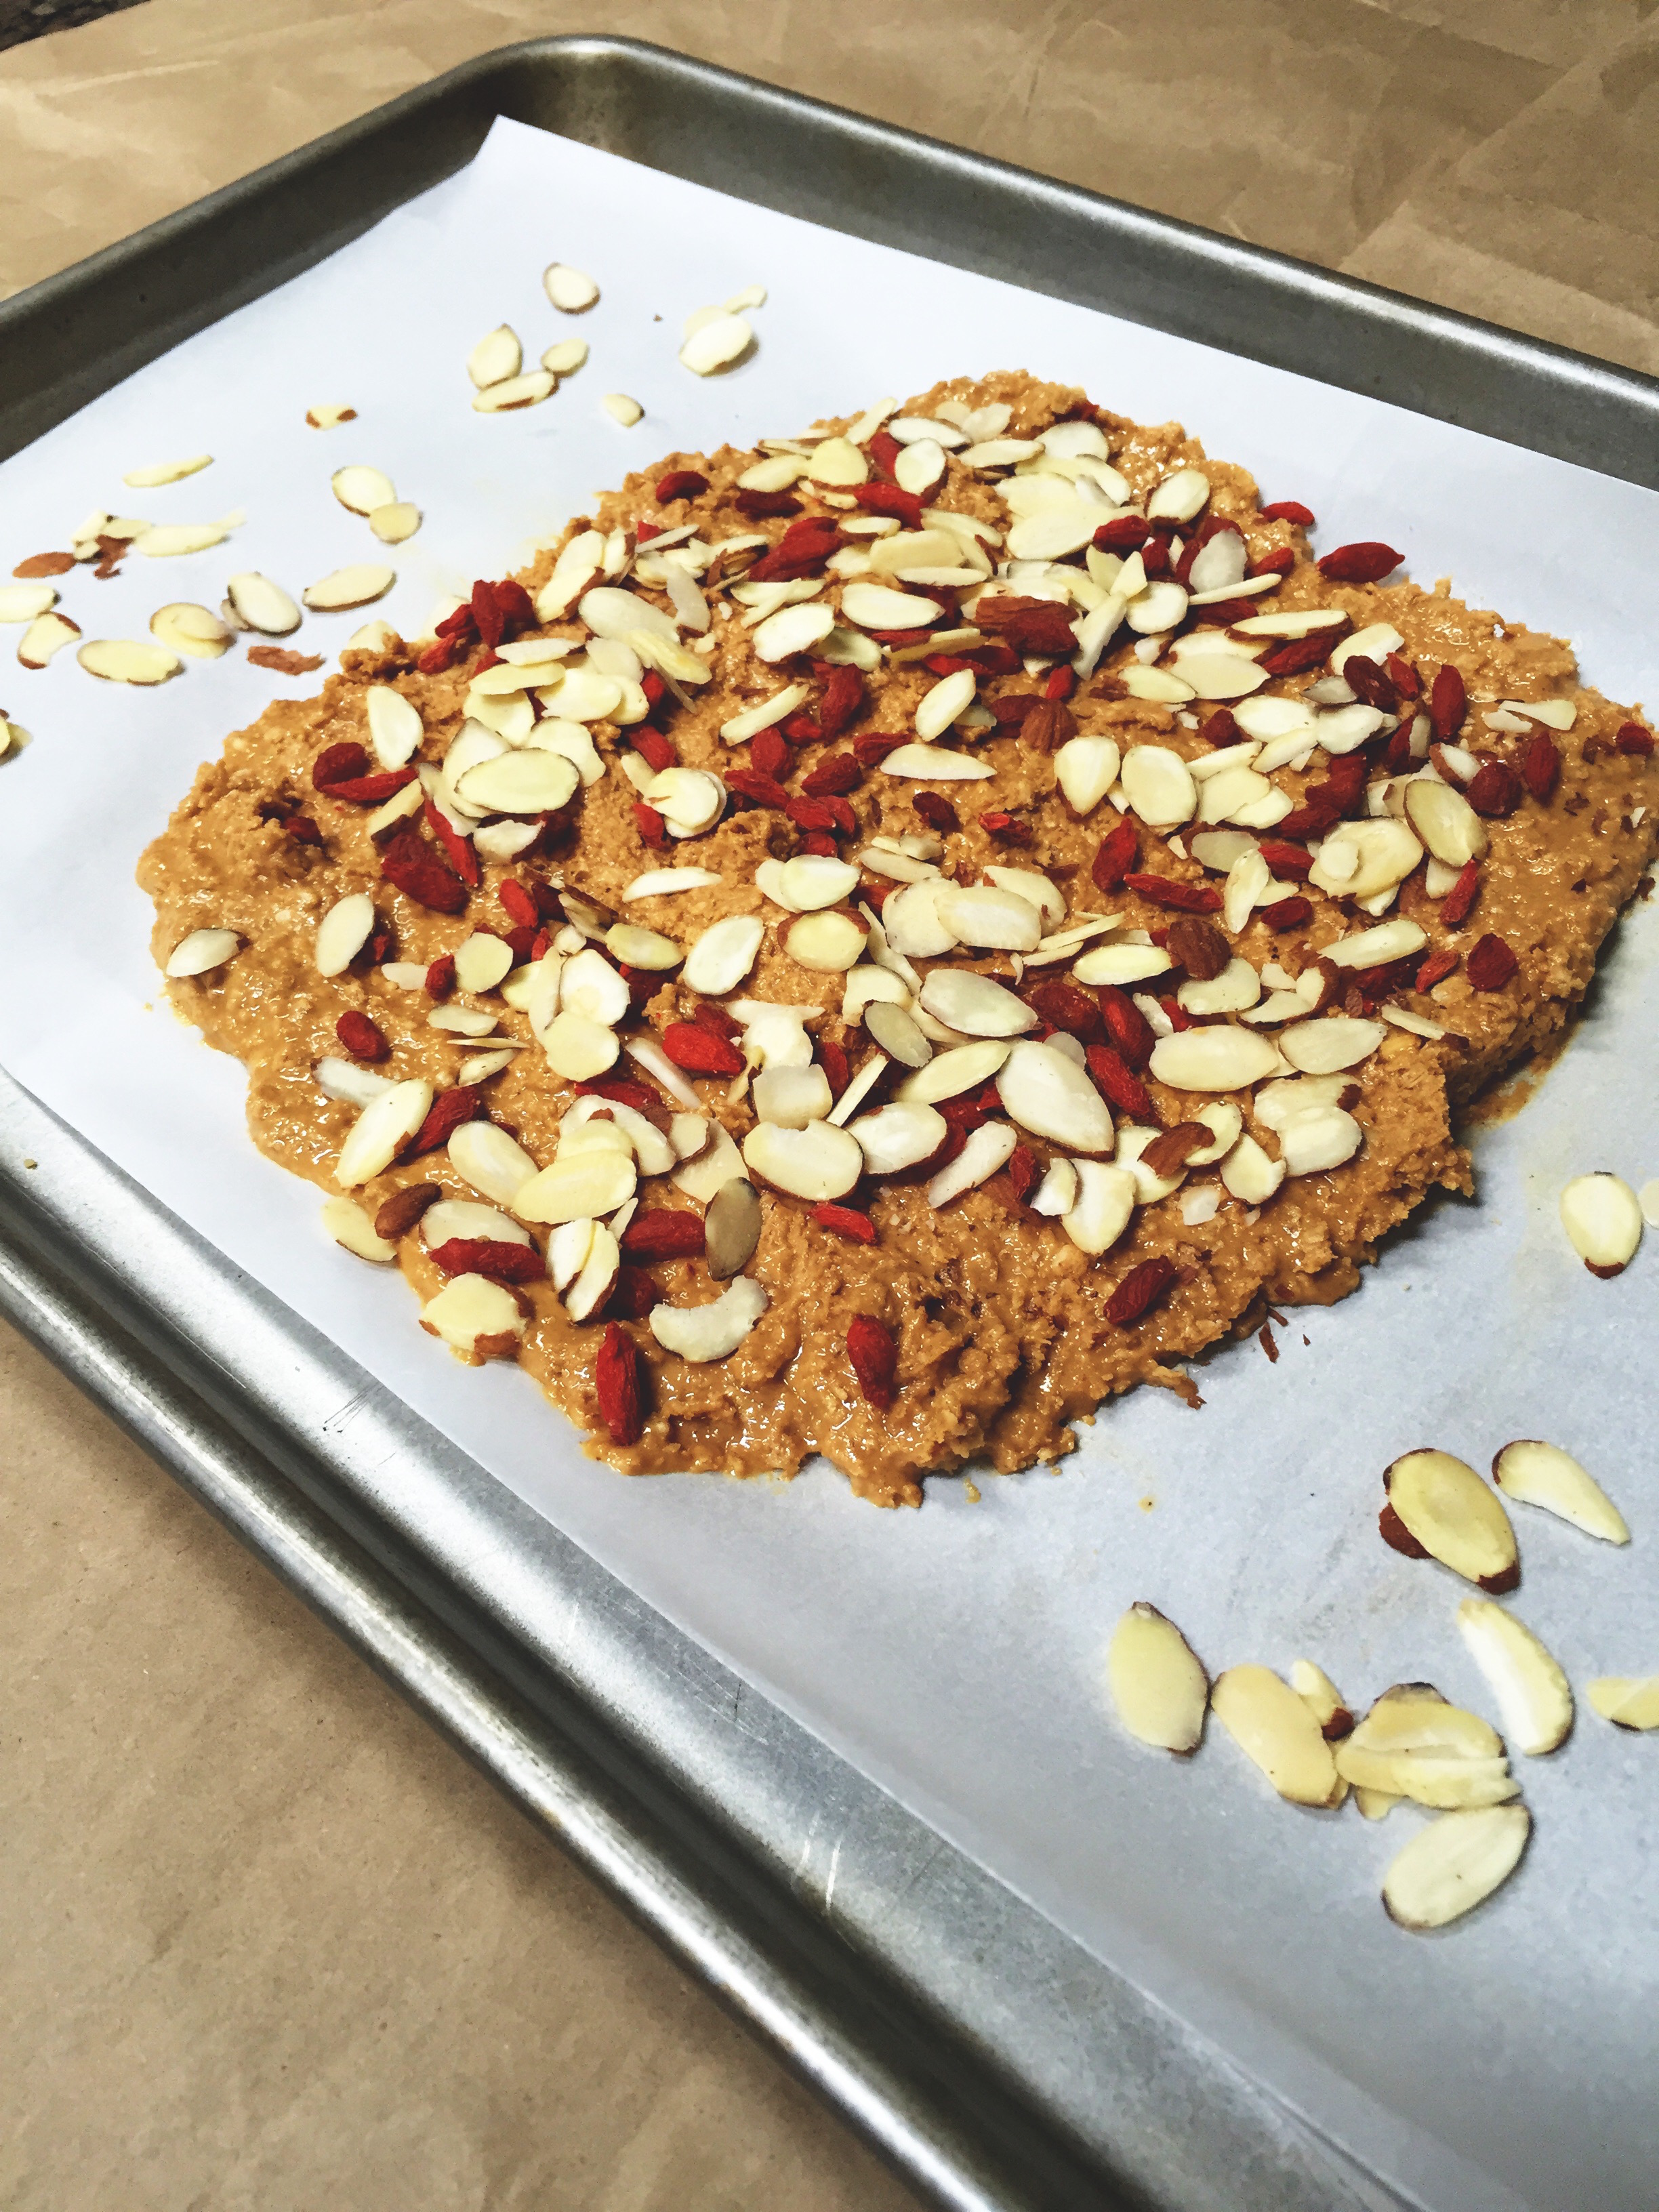 Peanut Oat Bars with Almonds and Goji Berries | Better Back To School Bite Size Snacks | YES! Nutrition, LLC